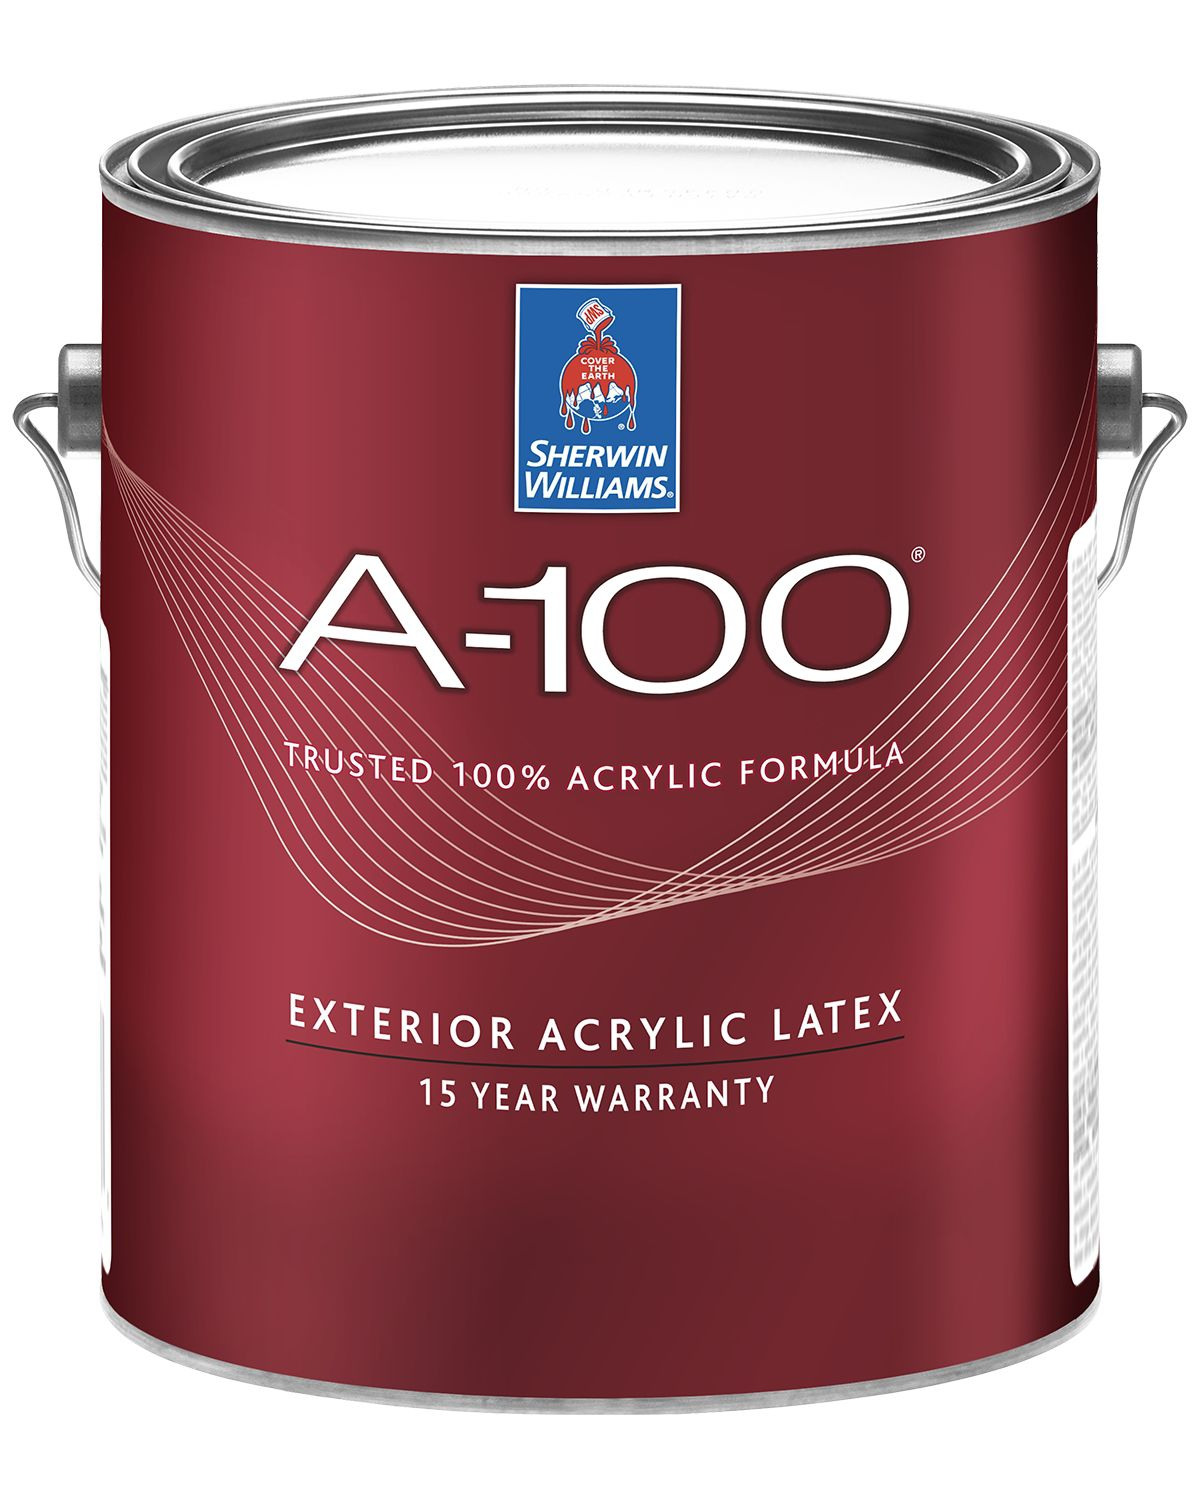 A-100 paint can